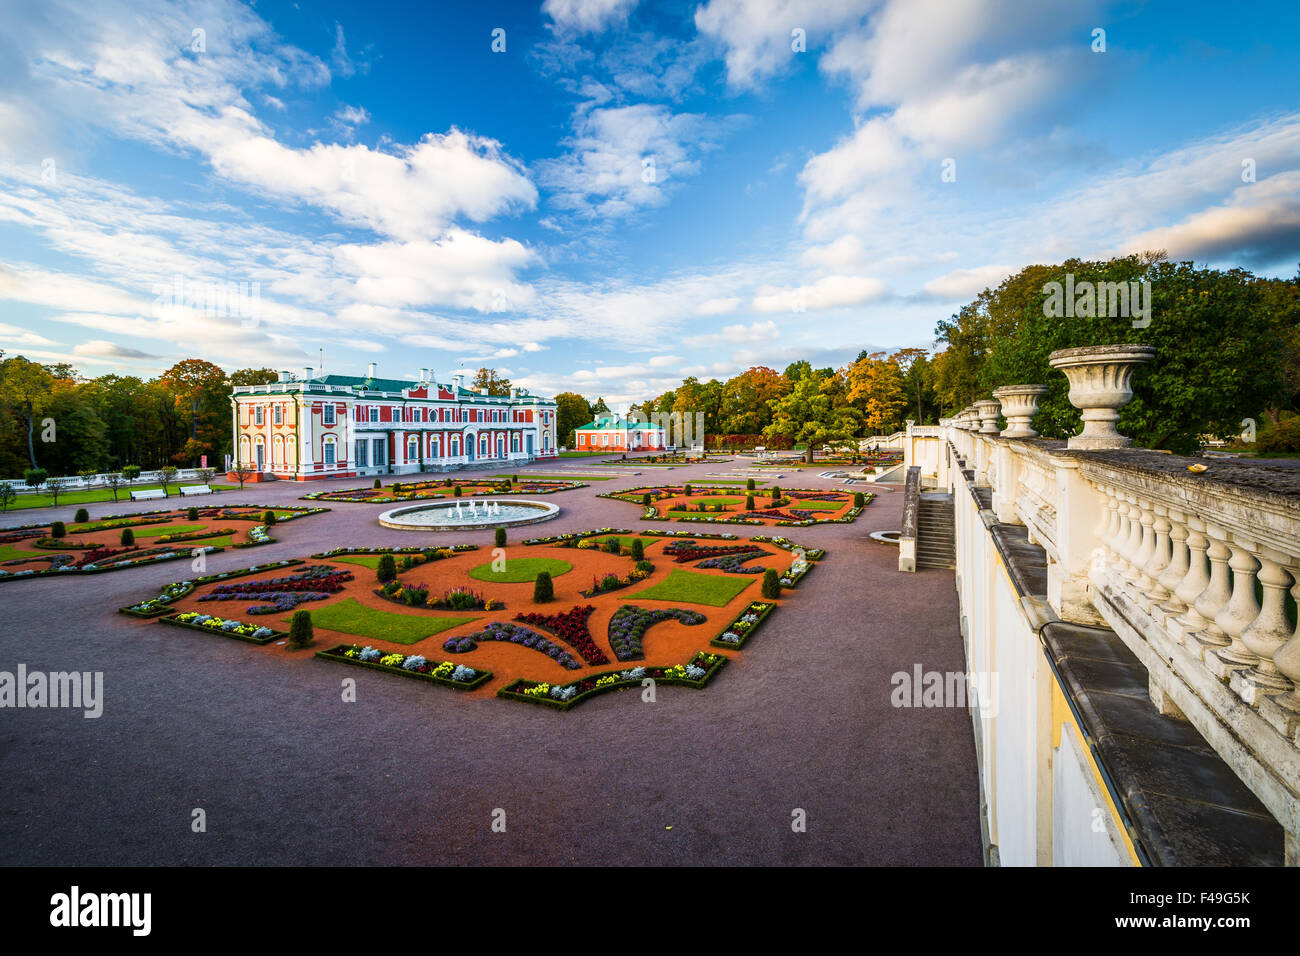 Kadriorg Palace, at Kadrioru Park, in Tallinn, Estonia. - Stock Image